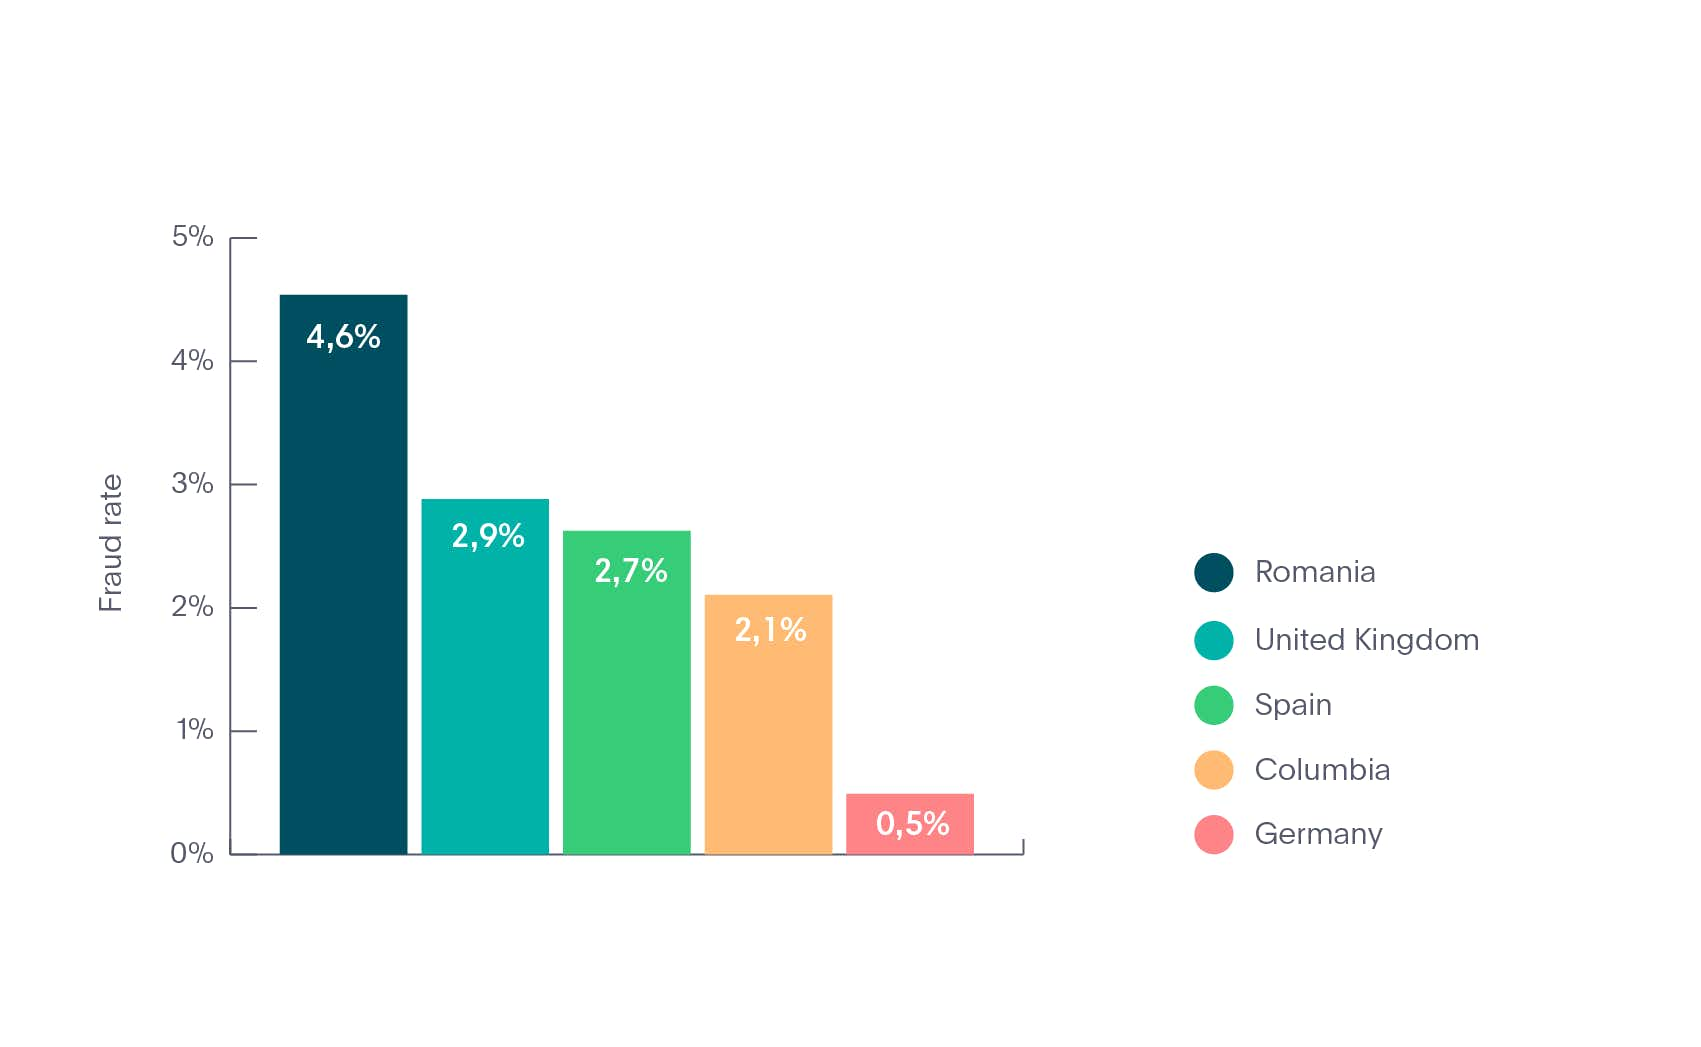 Top 5 countries for identity fraud in Fintech industry in 2020